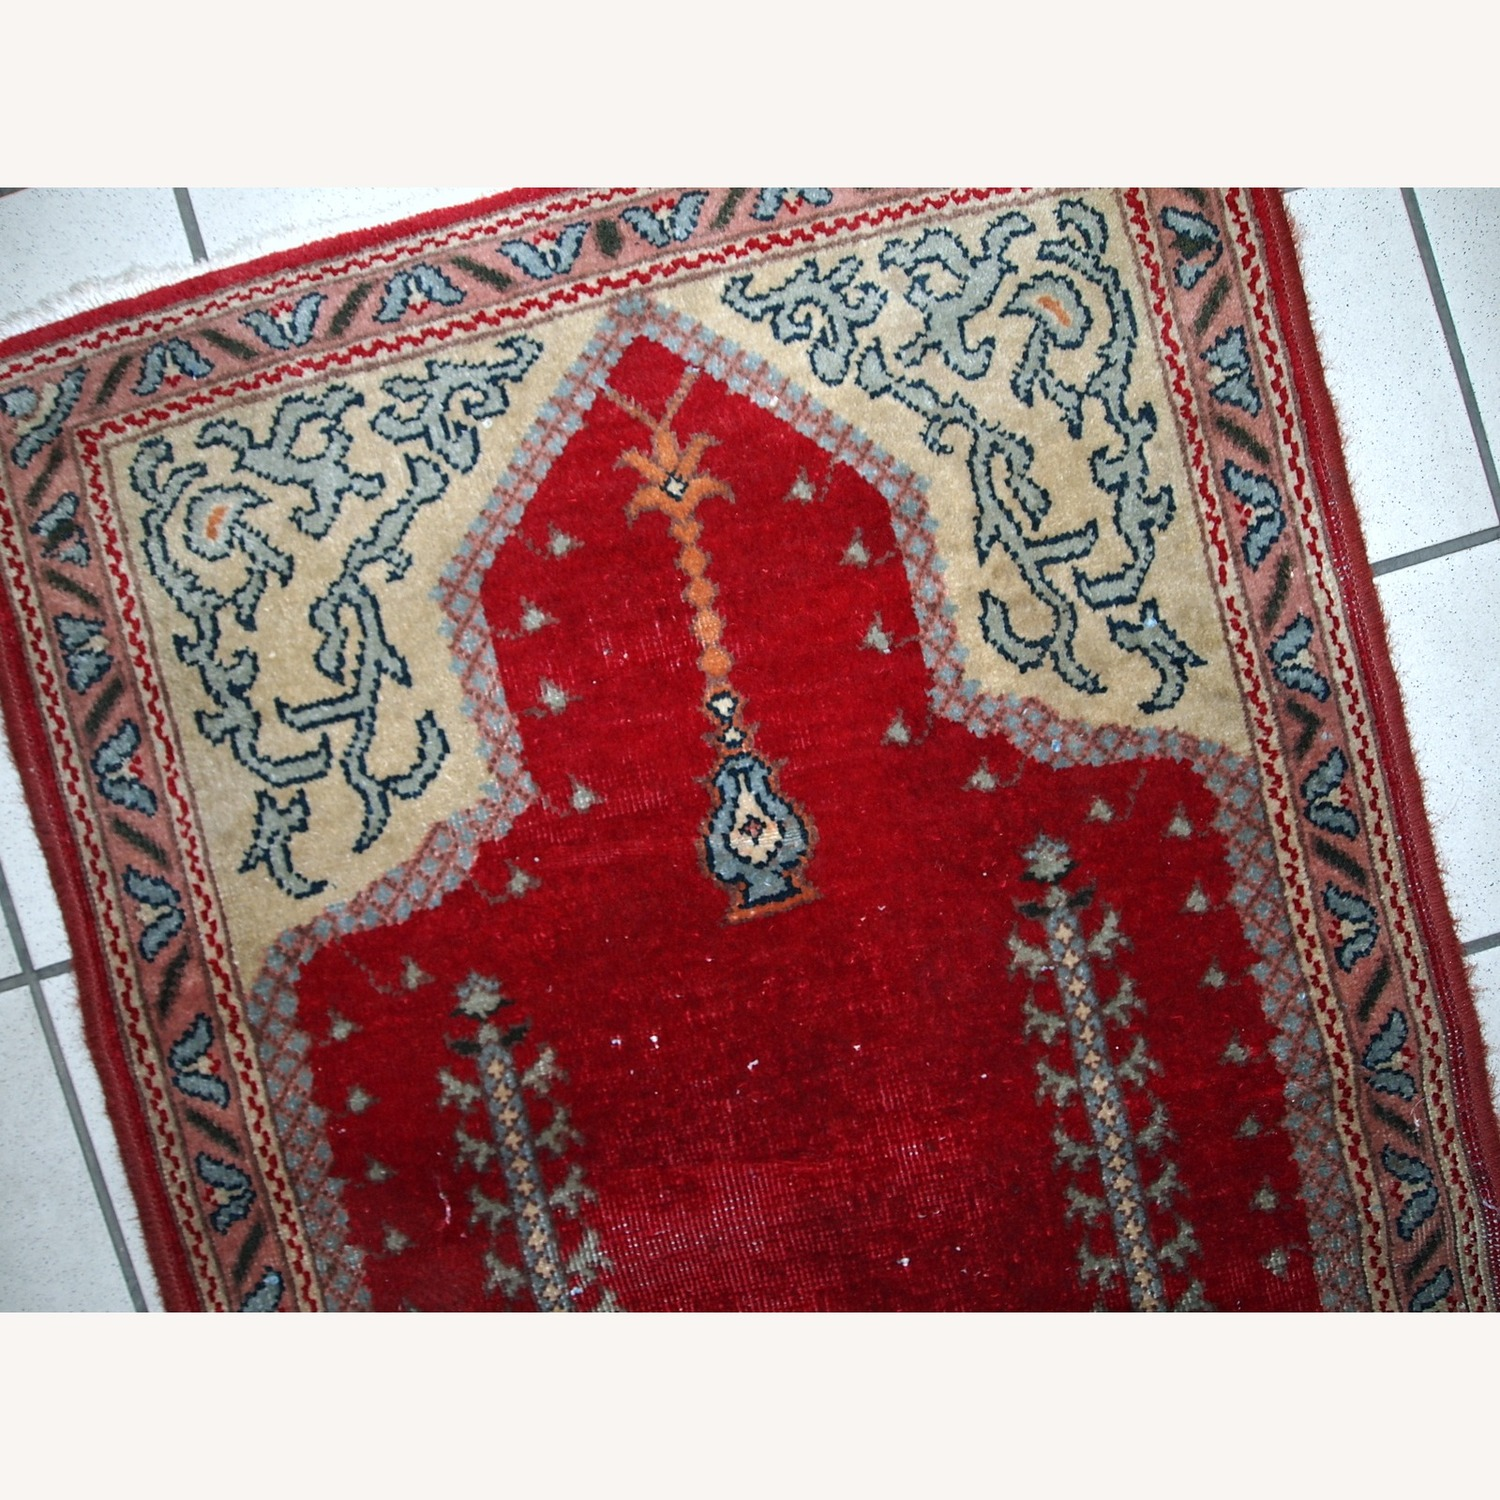 Handmade Antique Turkish Konya Rug - image-9